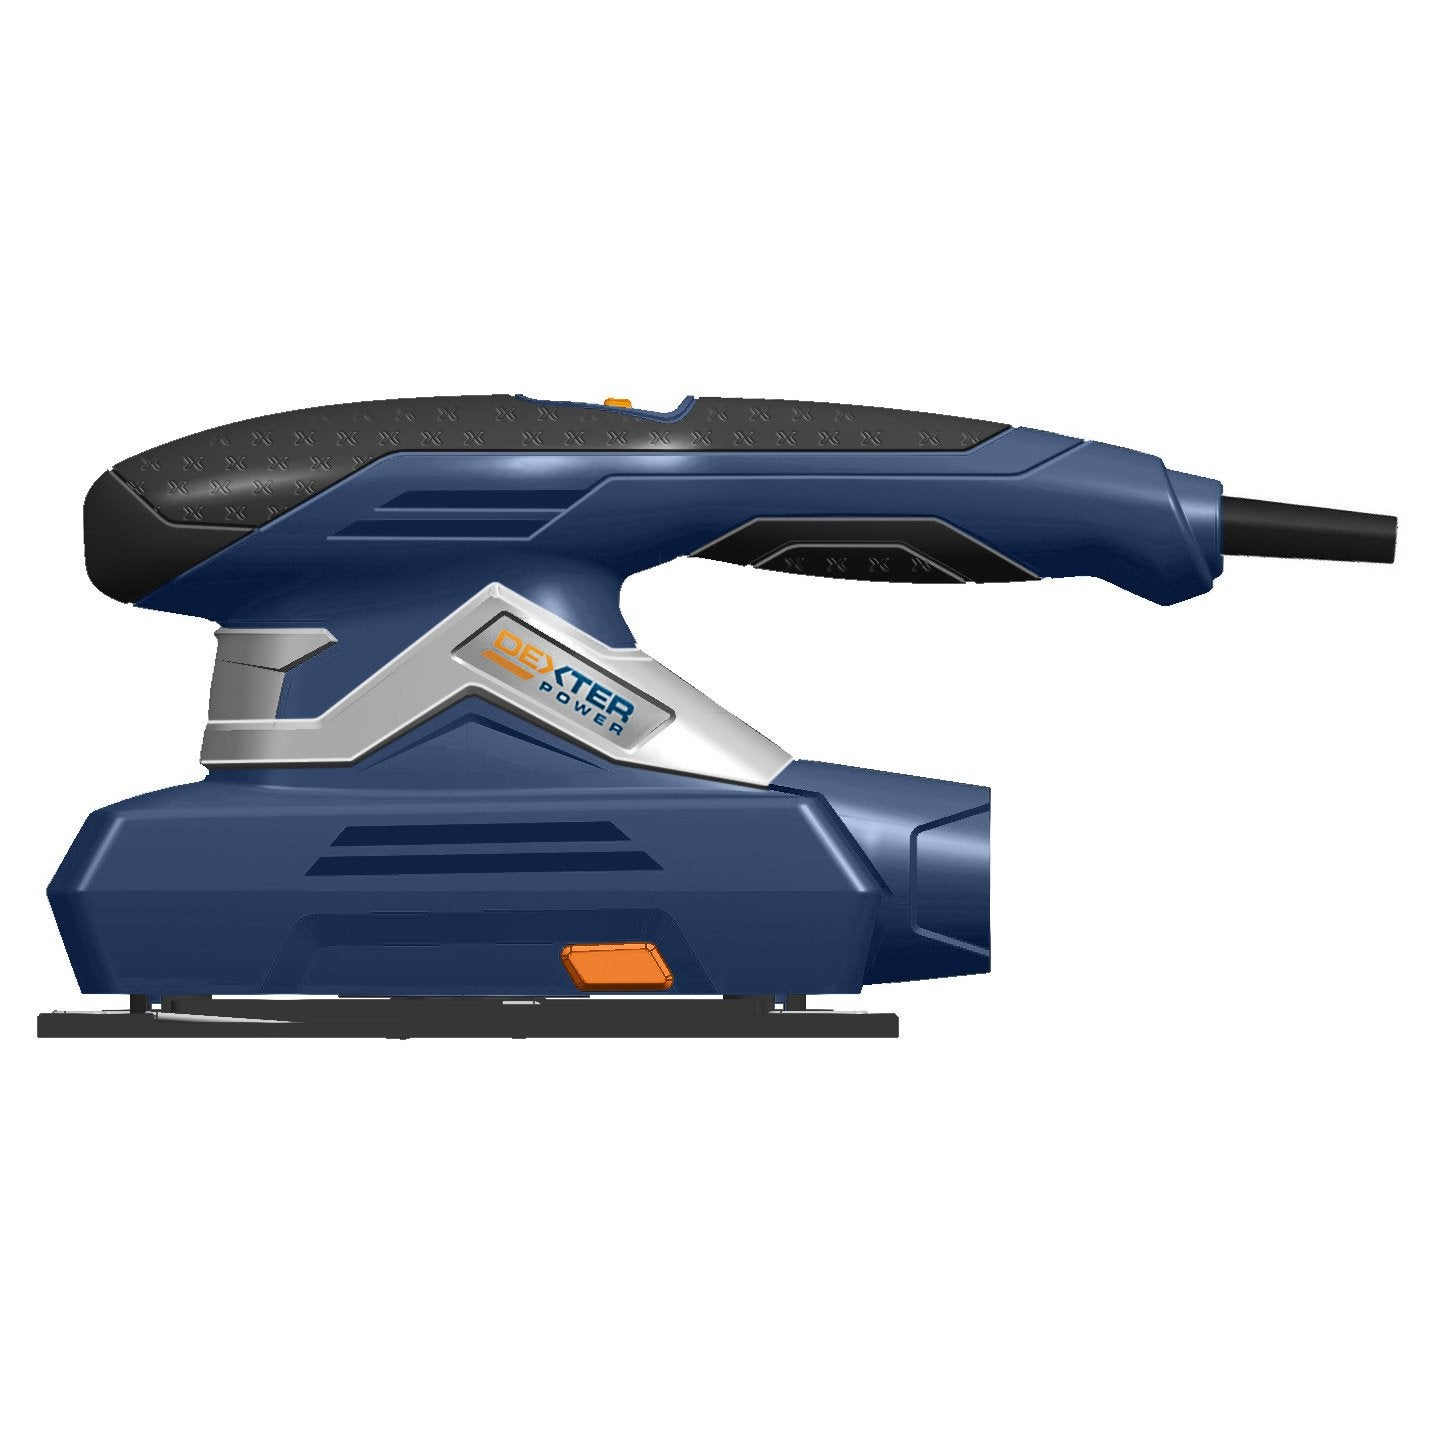 Ponceuse vibrante filaire dexter power 150 w leroy merlin - Leroy merlin ponceuse ...